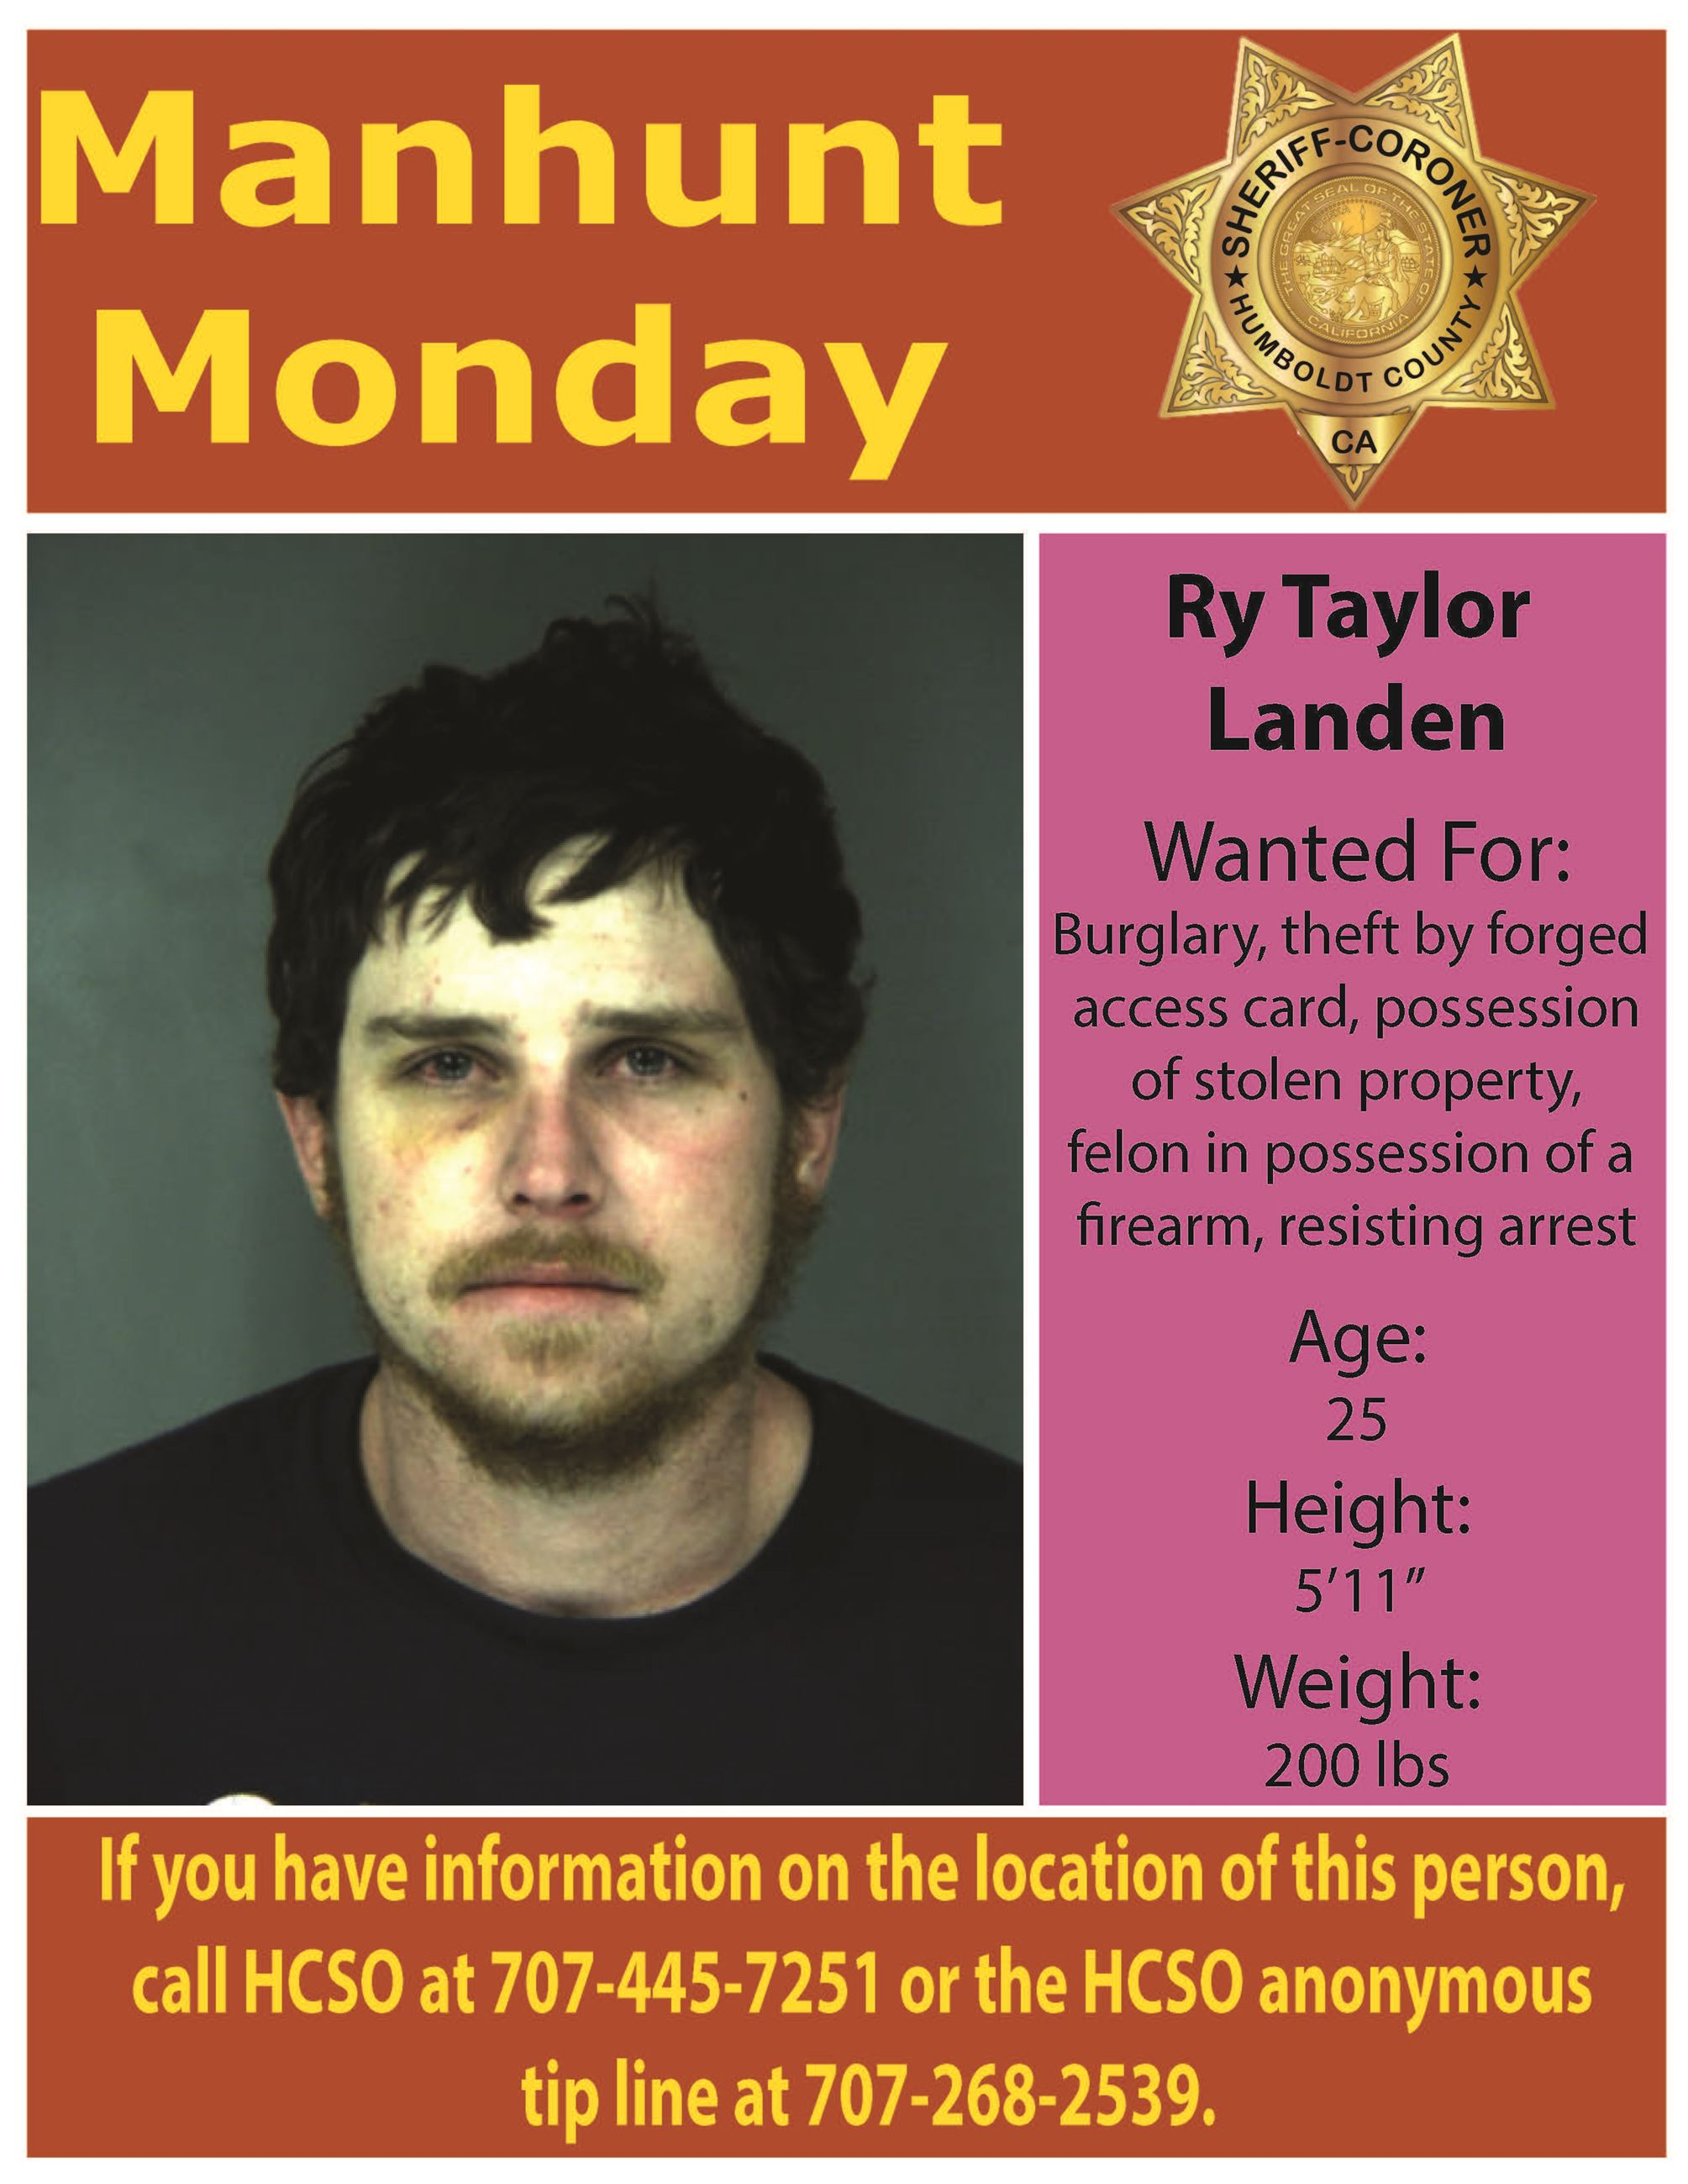 Manhunt Monday Ry Taylor Landen